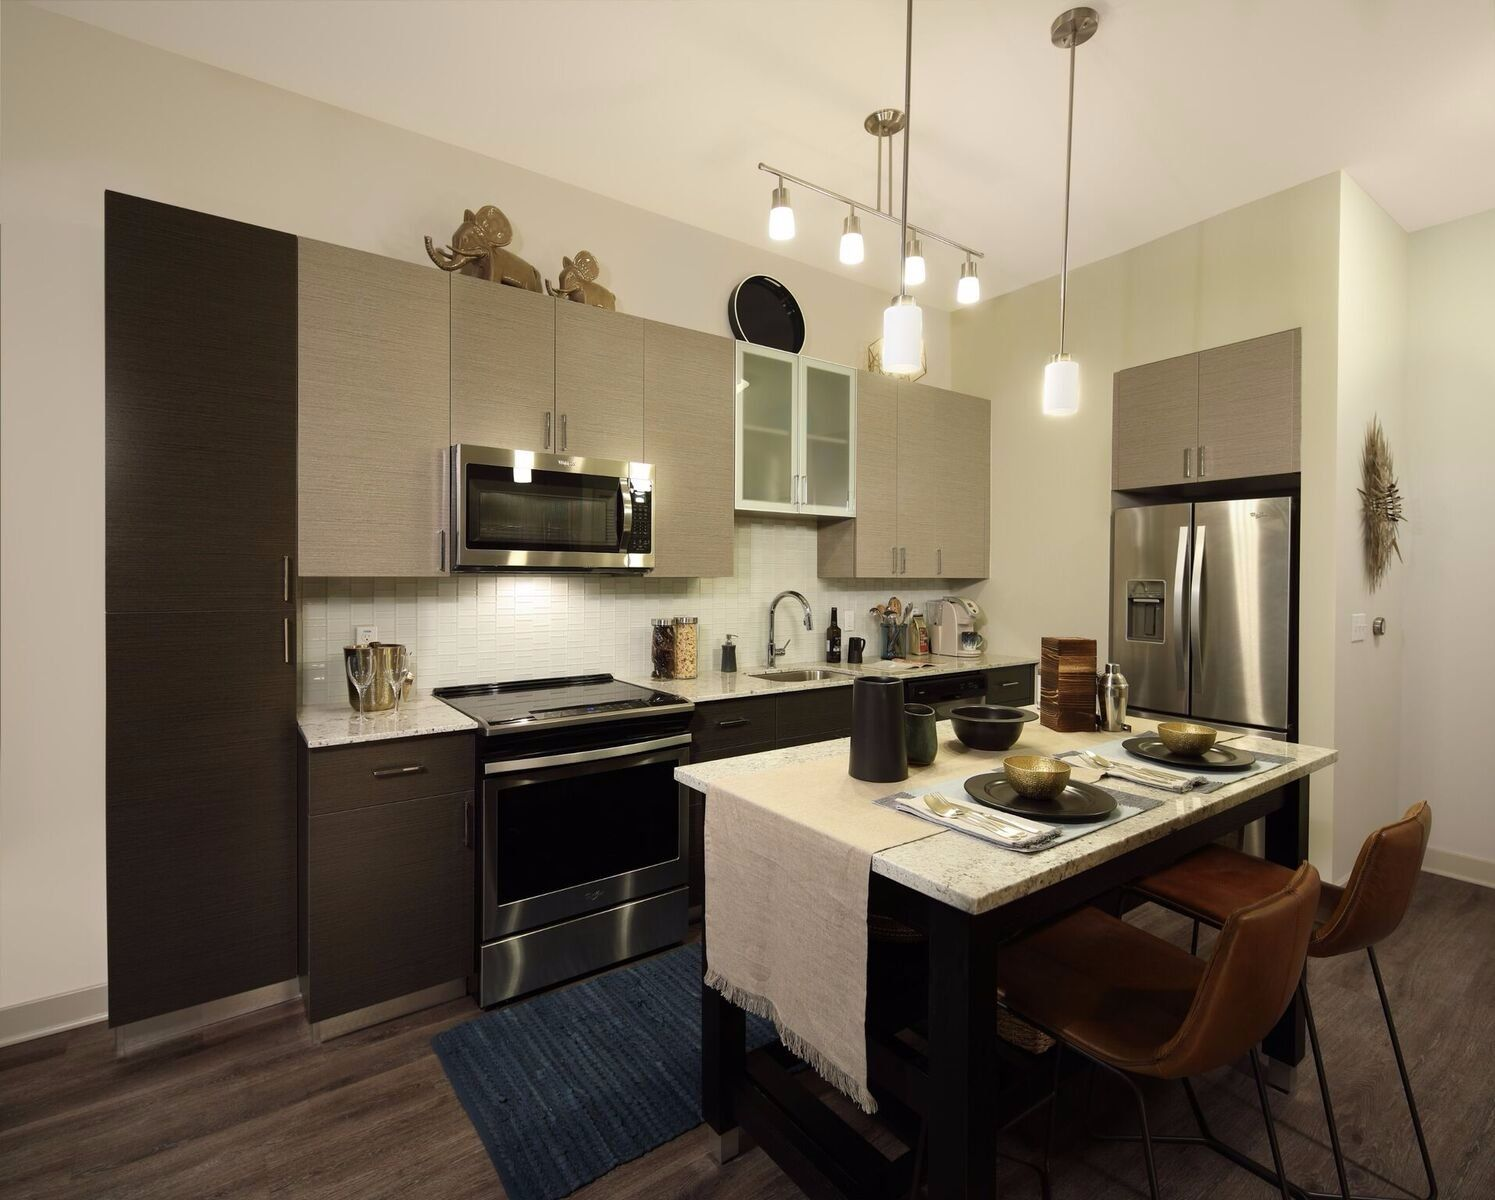 apartment kitchen with bar seating and pendant lighting